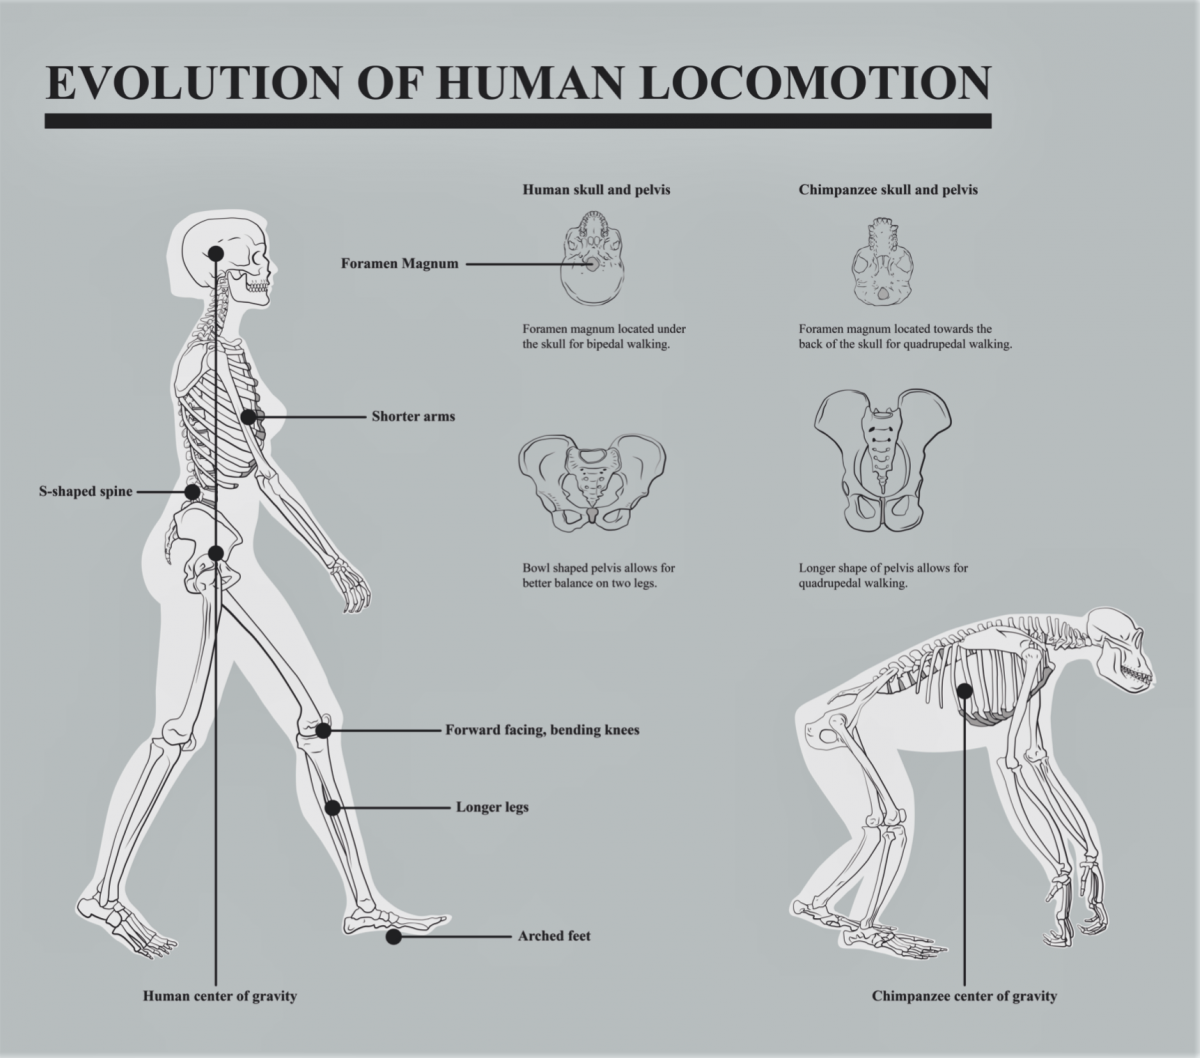 evolution of human locomotion